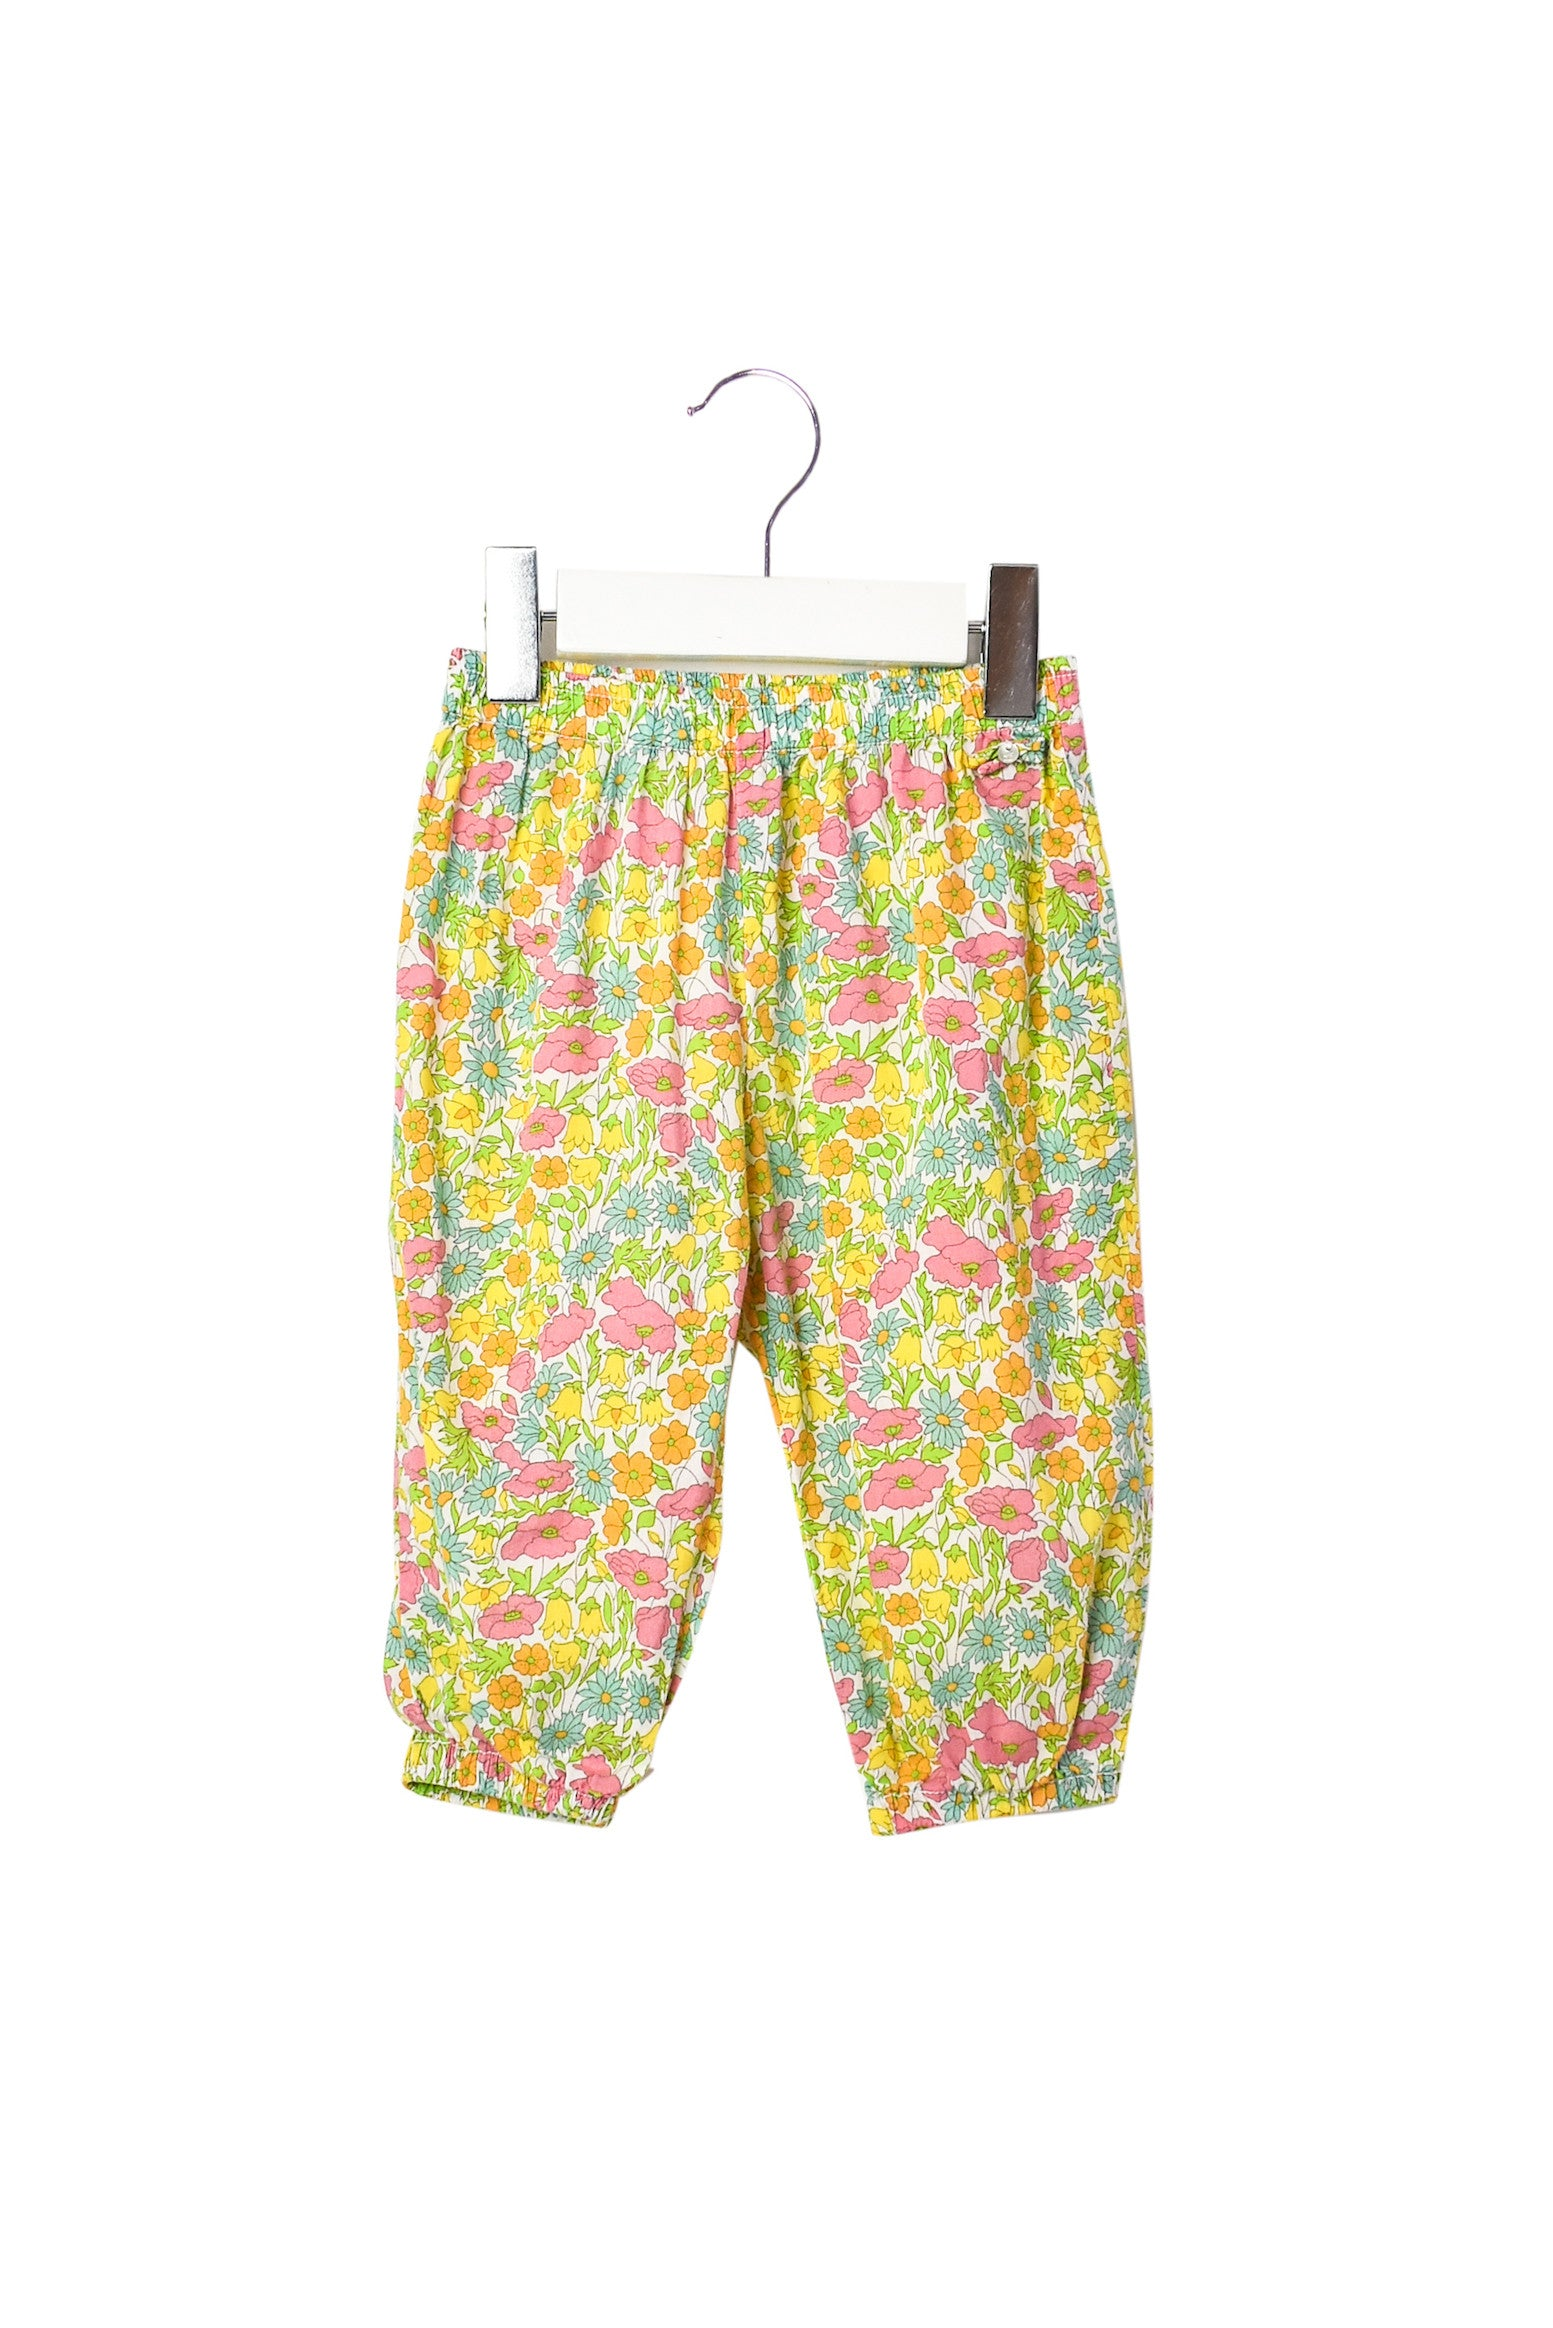 10005009 Fred Bare Baby~ Pants 6-12M, Fred Bare Retykle | Online Baby & Kids Clothing Hong Kong